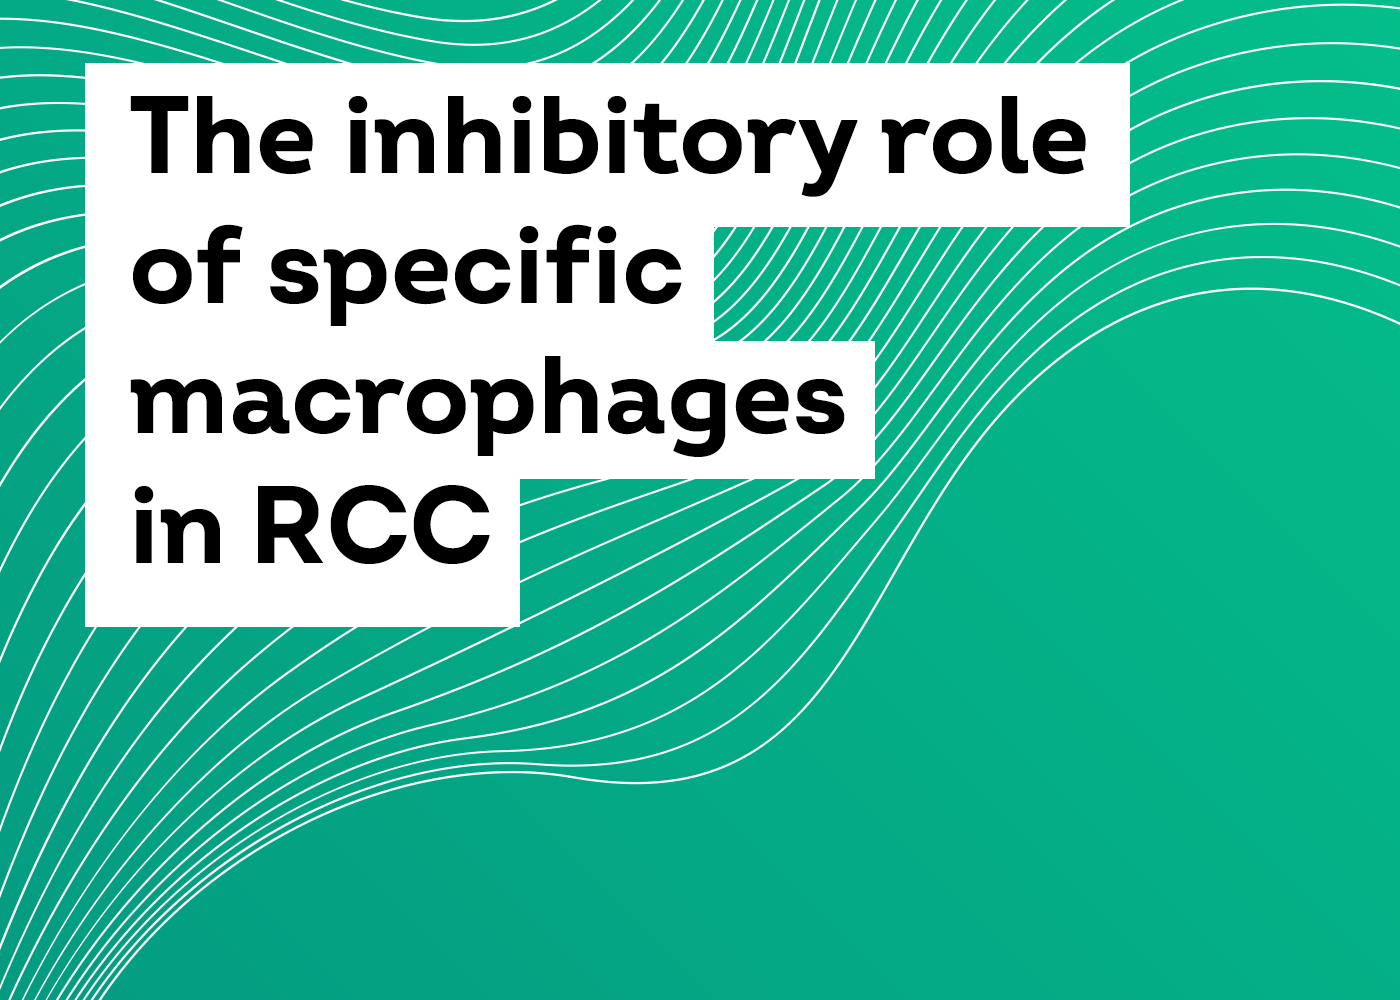 The inhibitory role of specific macrophages in RCC